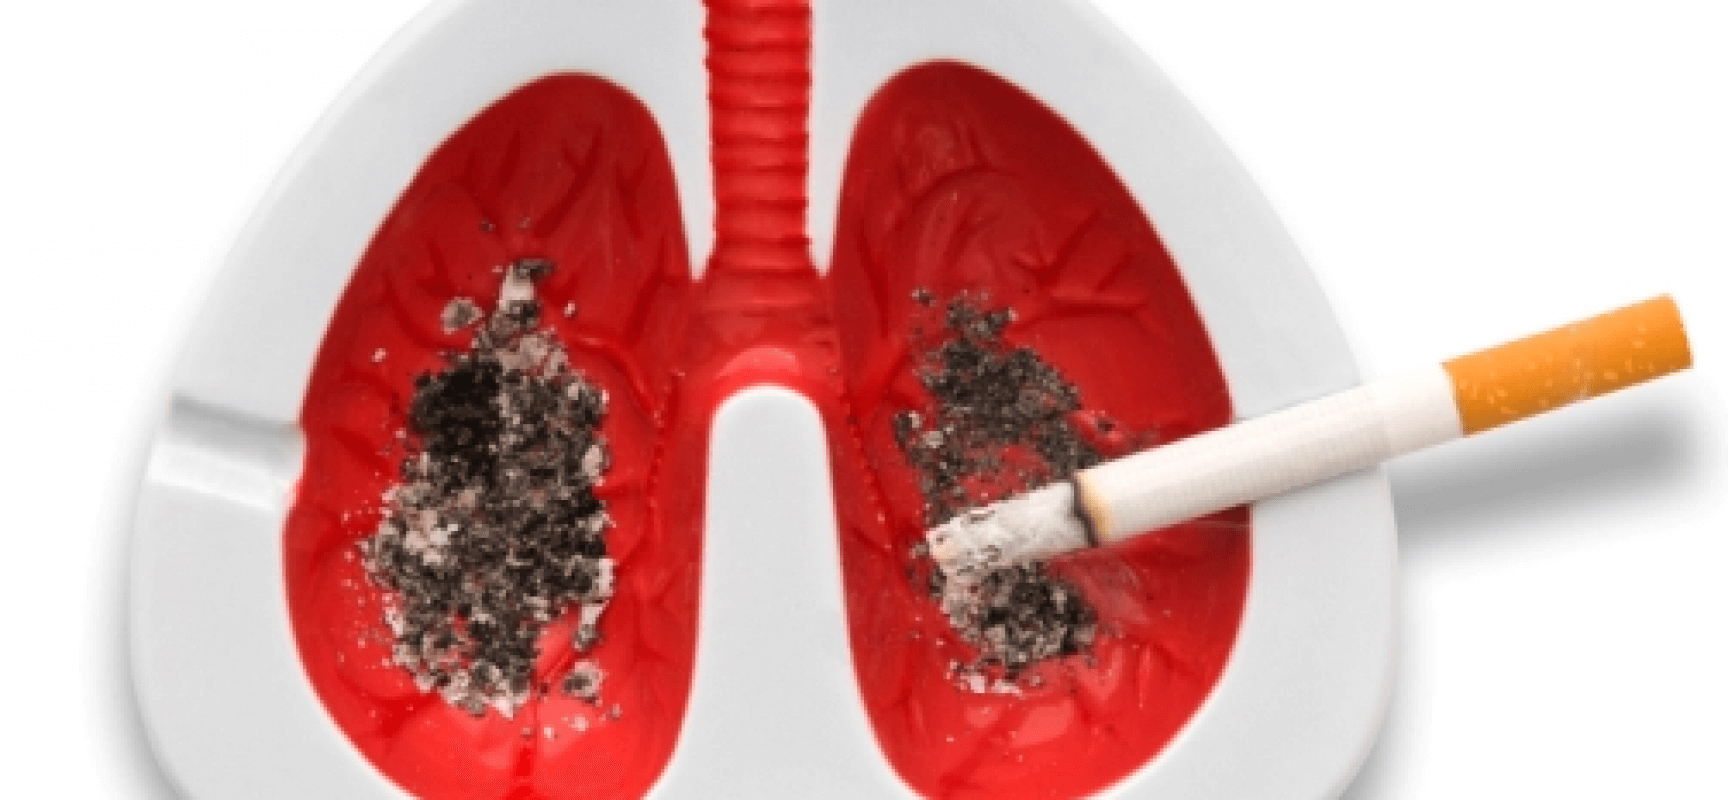 Smoking INJURES your Health | No-Smoking INSURES your health